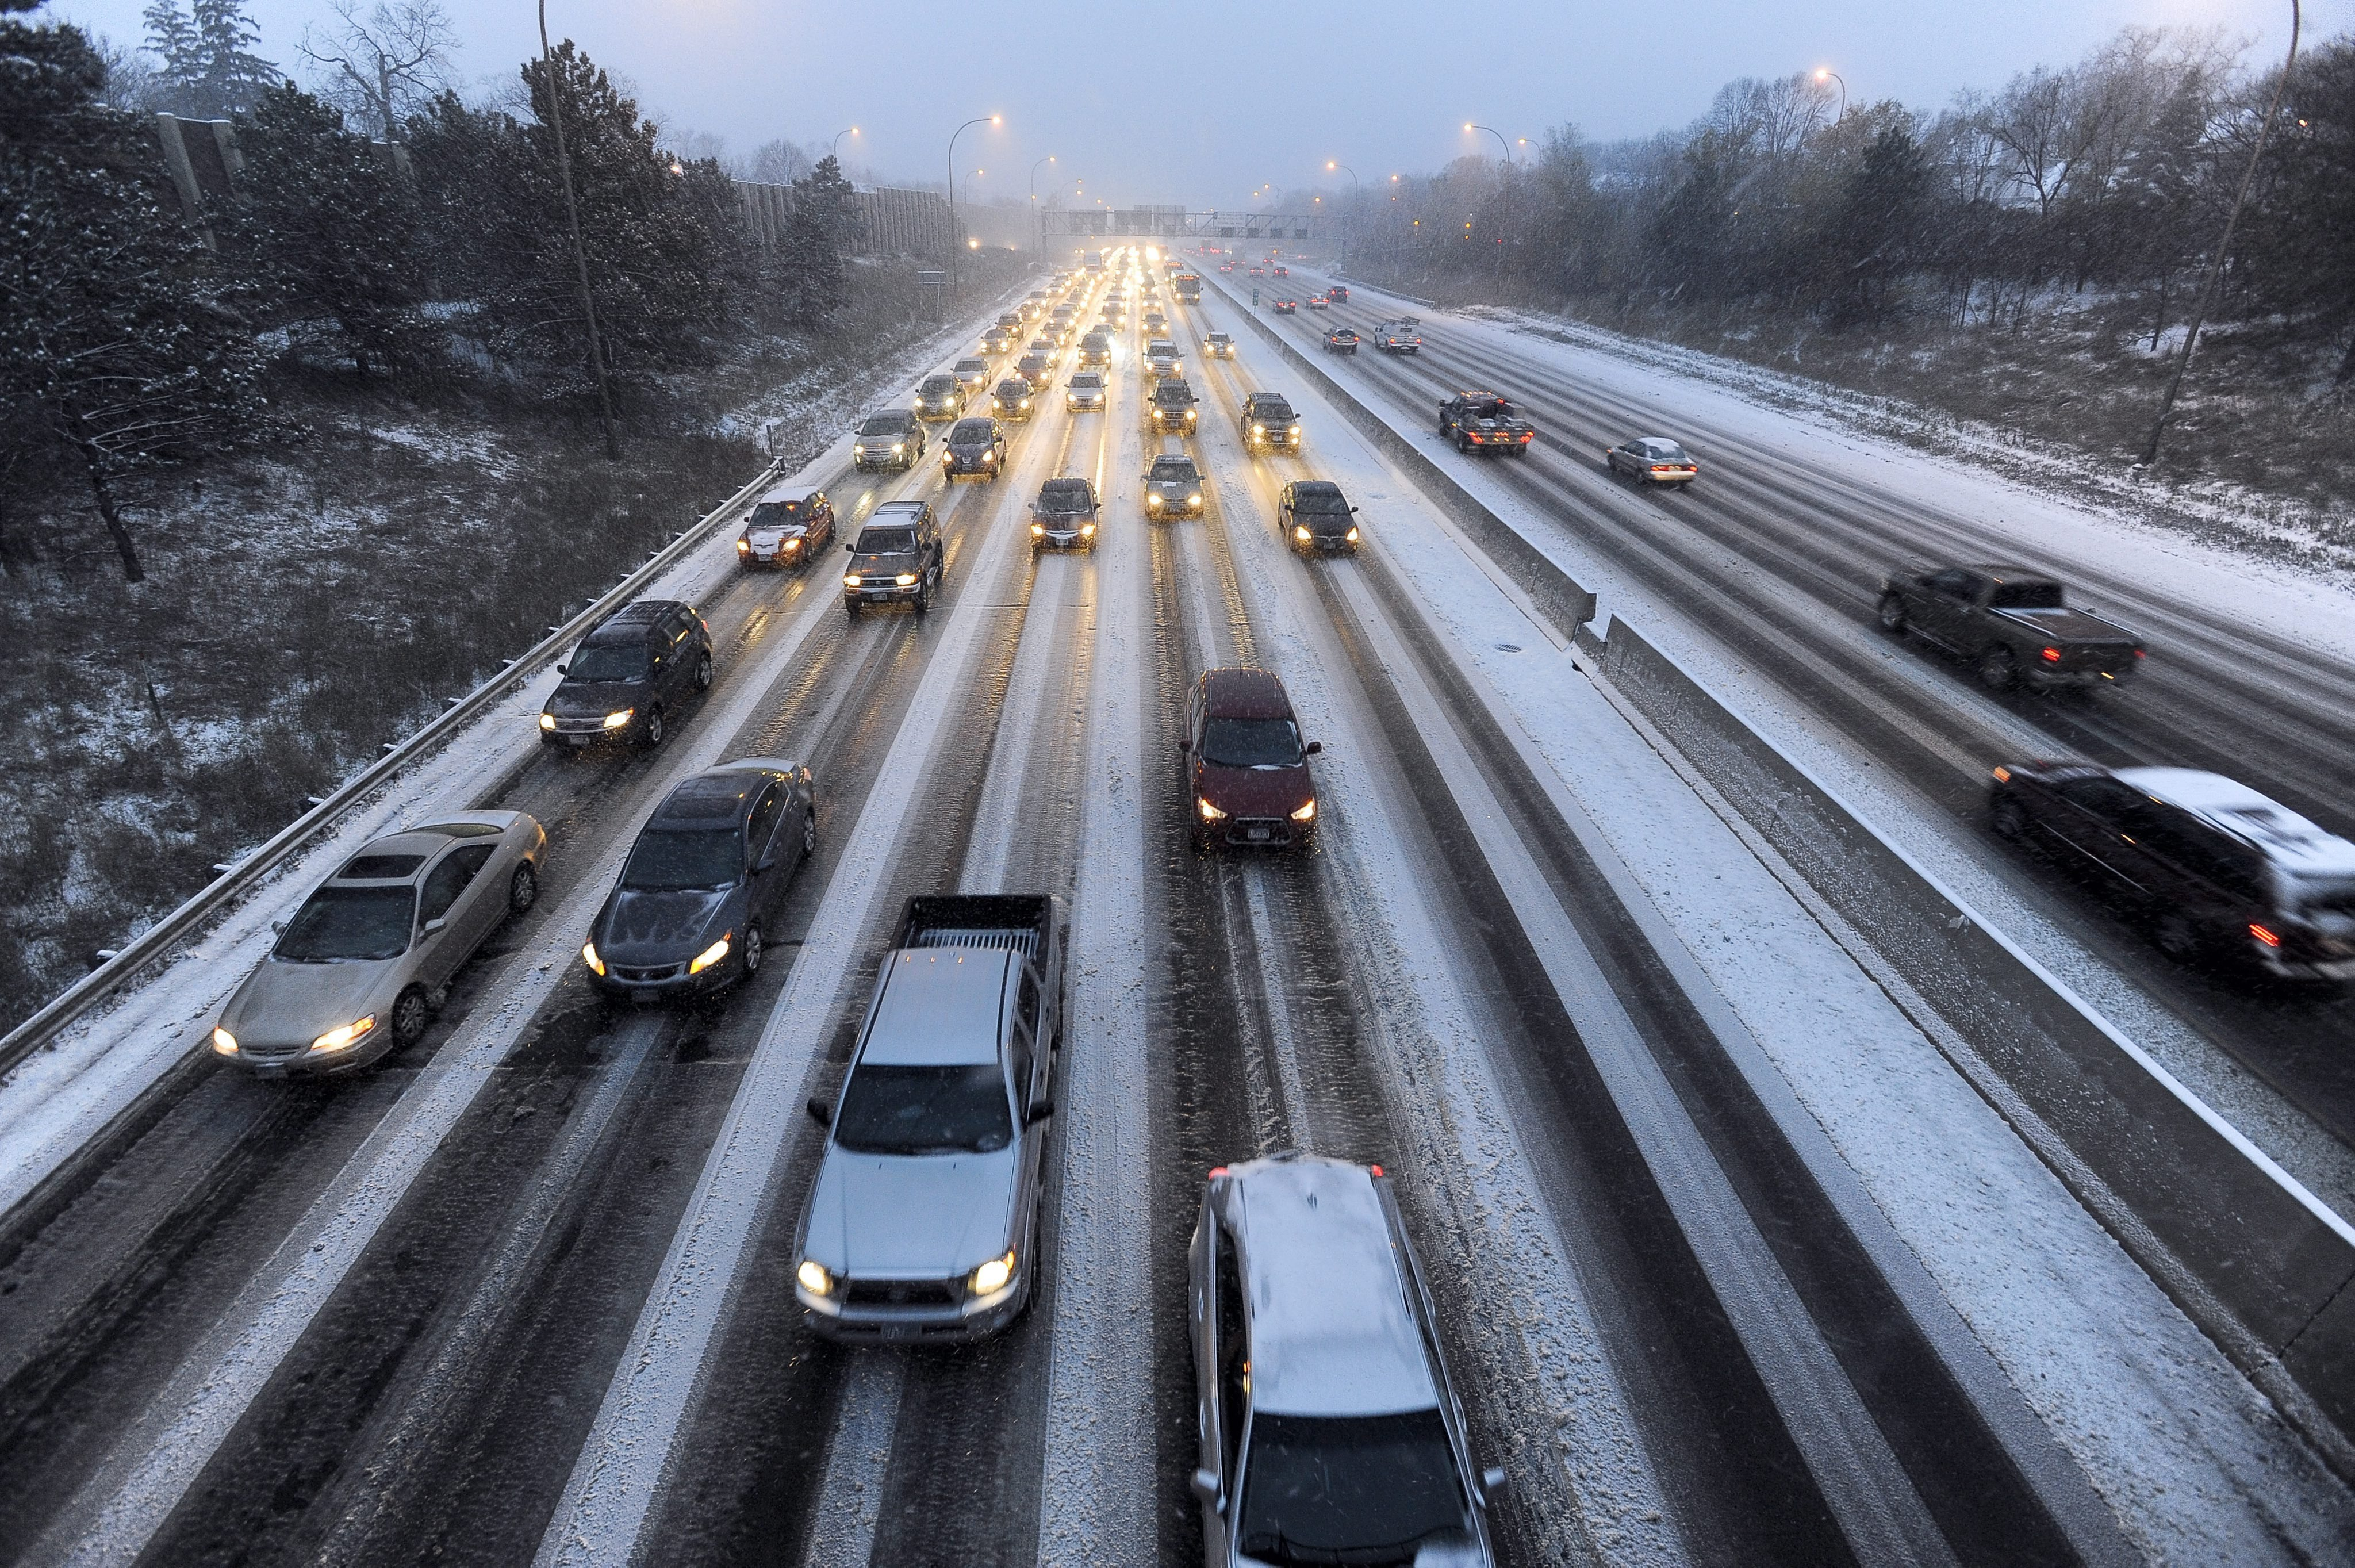 Traffic on Interstate 35 slows to a crawl during the season's first snowstorm in Minneapolis on Nov. 10, 2014.